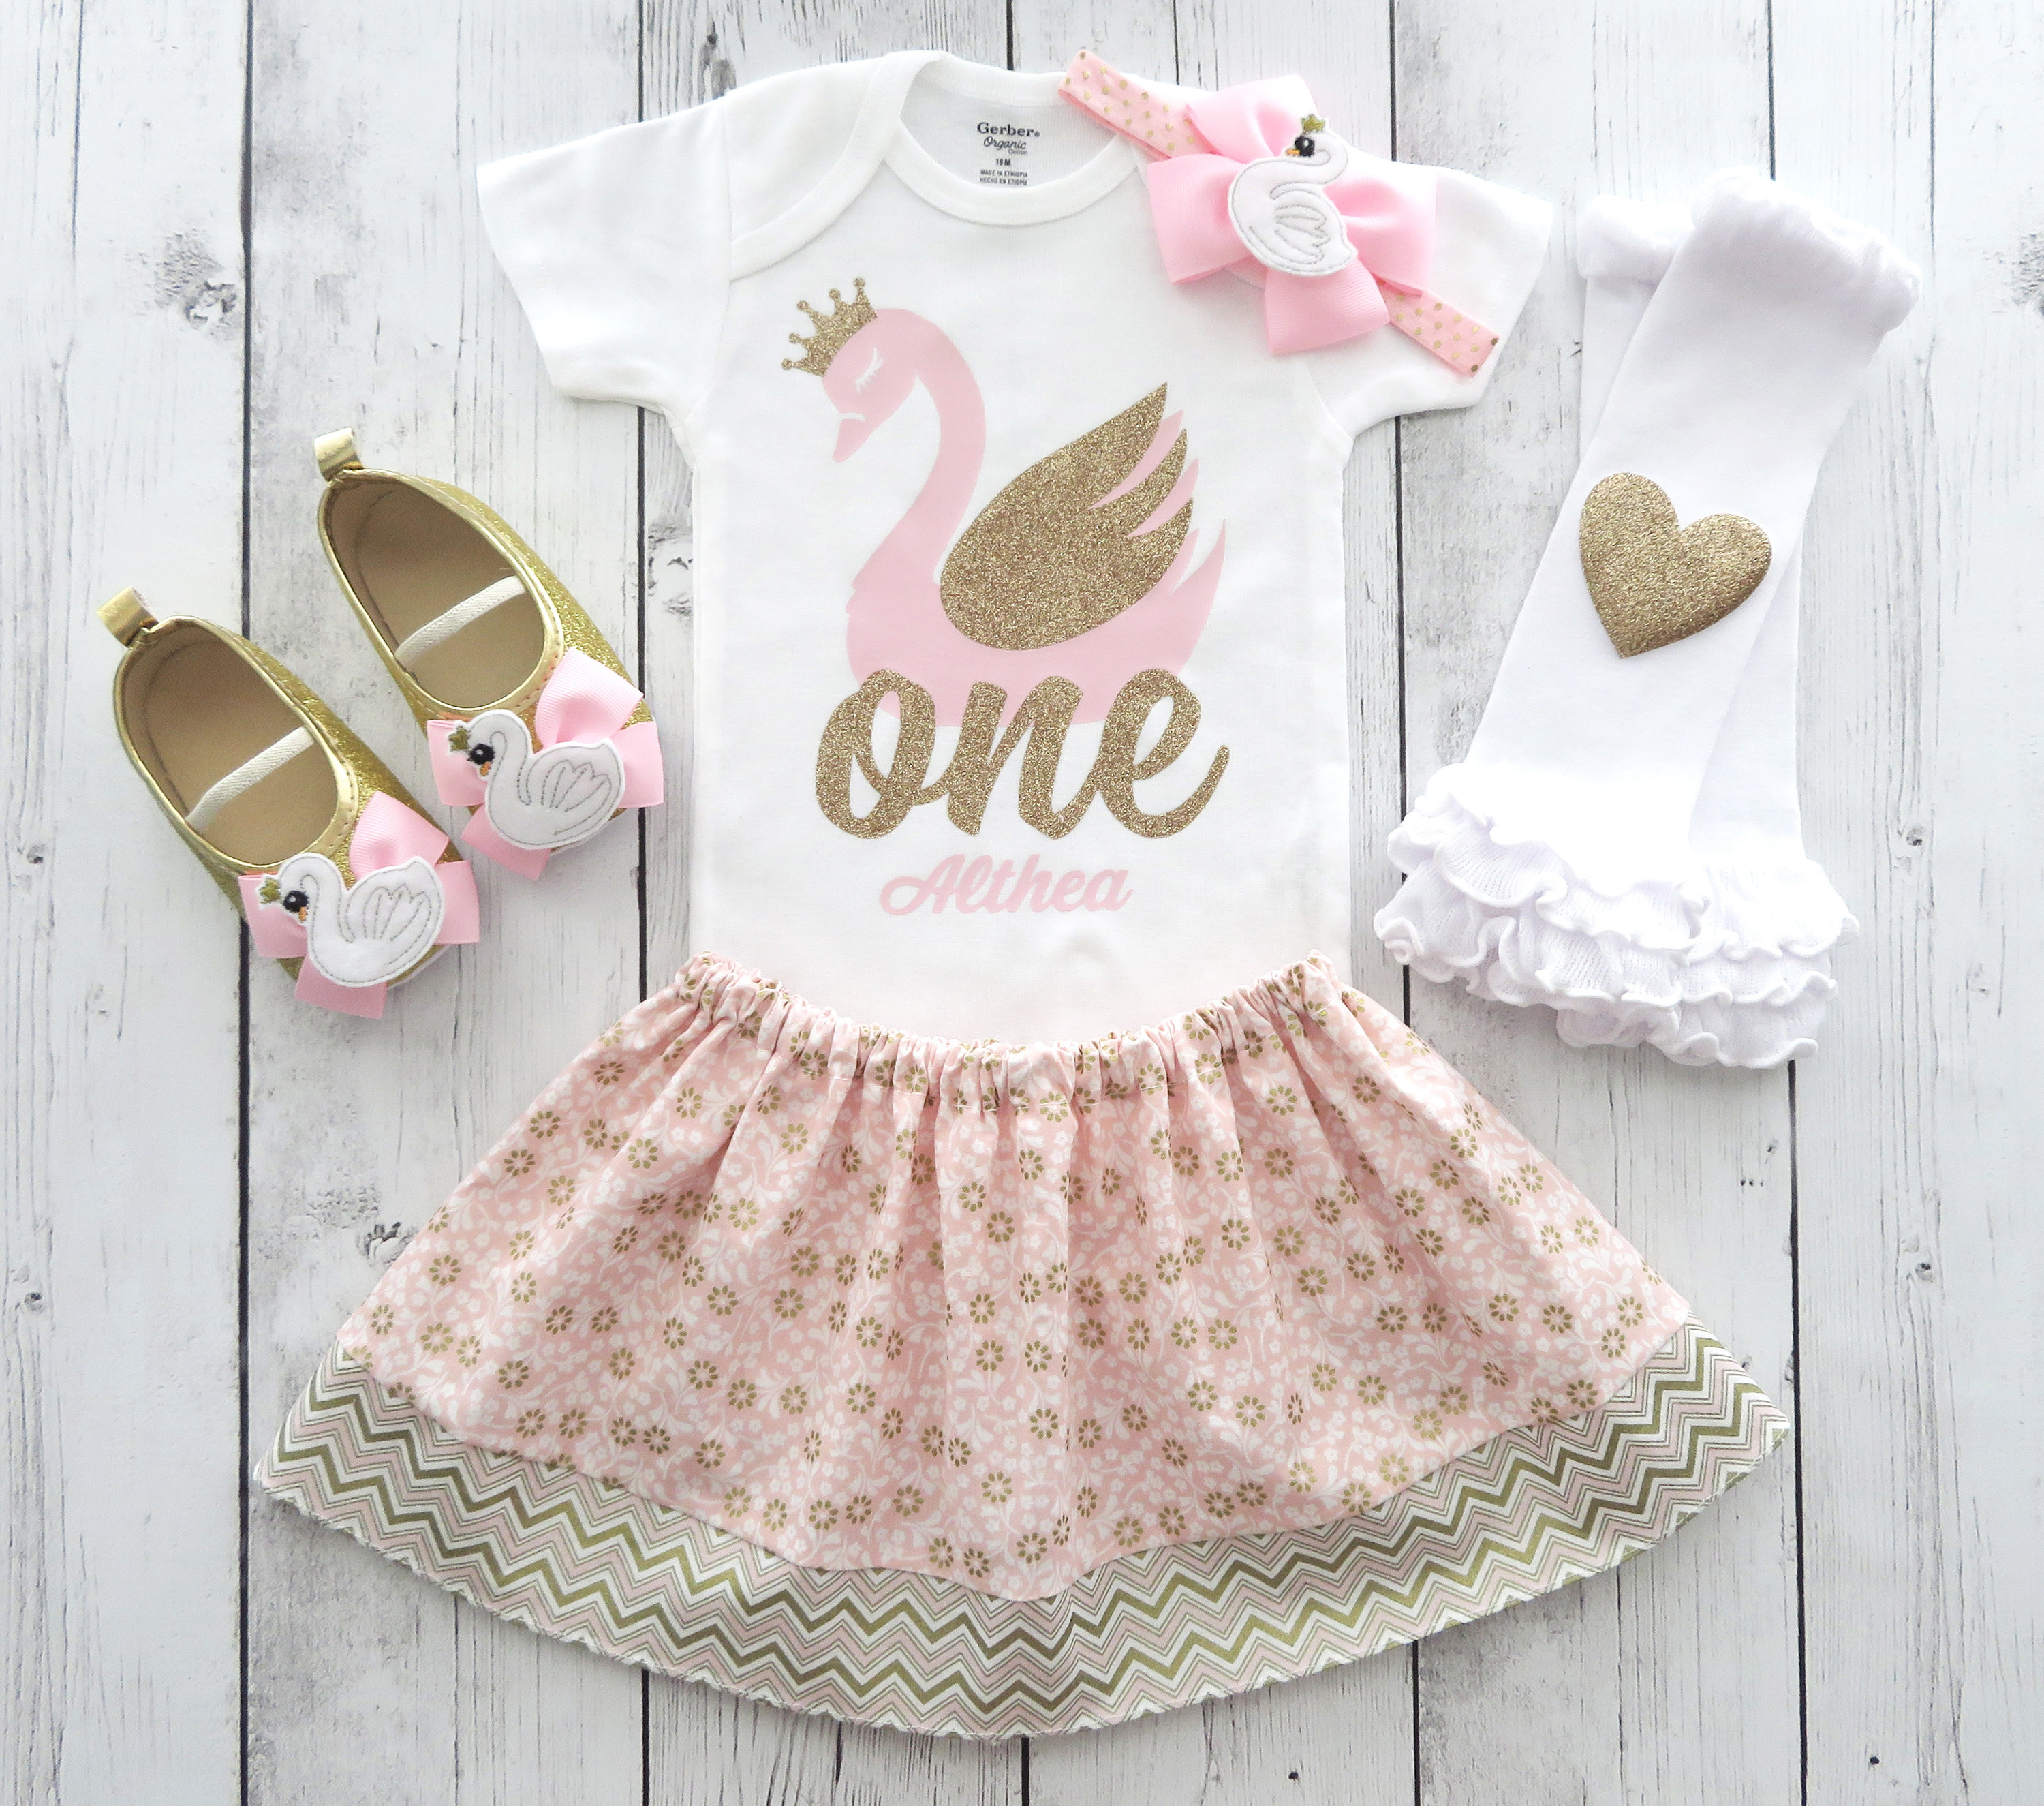 Swan First Birthday Outfit for girl in pink and gold - swan soiree, personalized, swan lake, swan 1st birthday outfit girl, swan lake bday